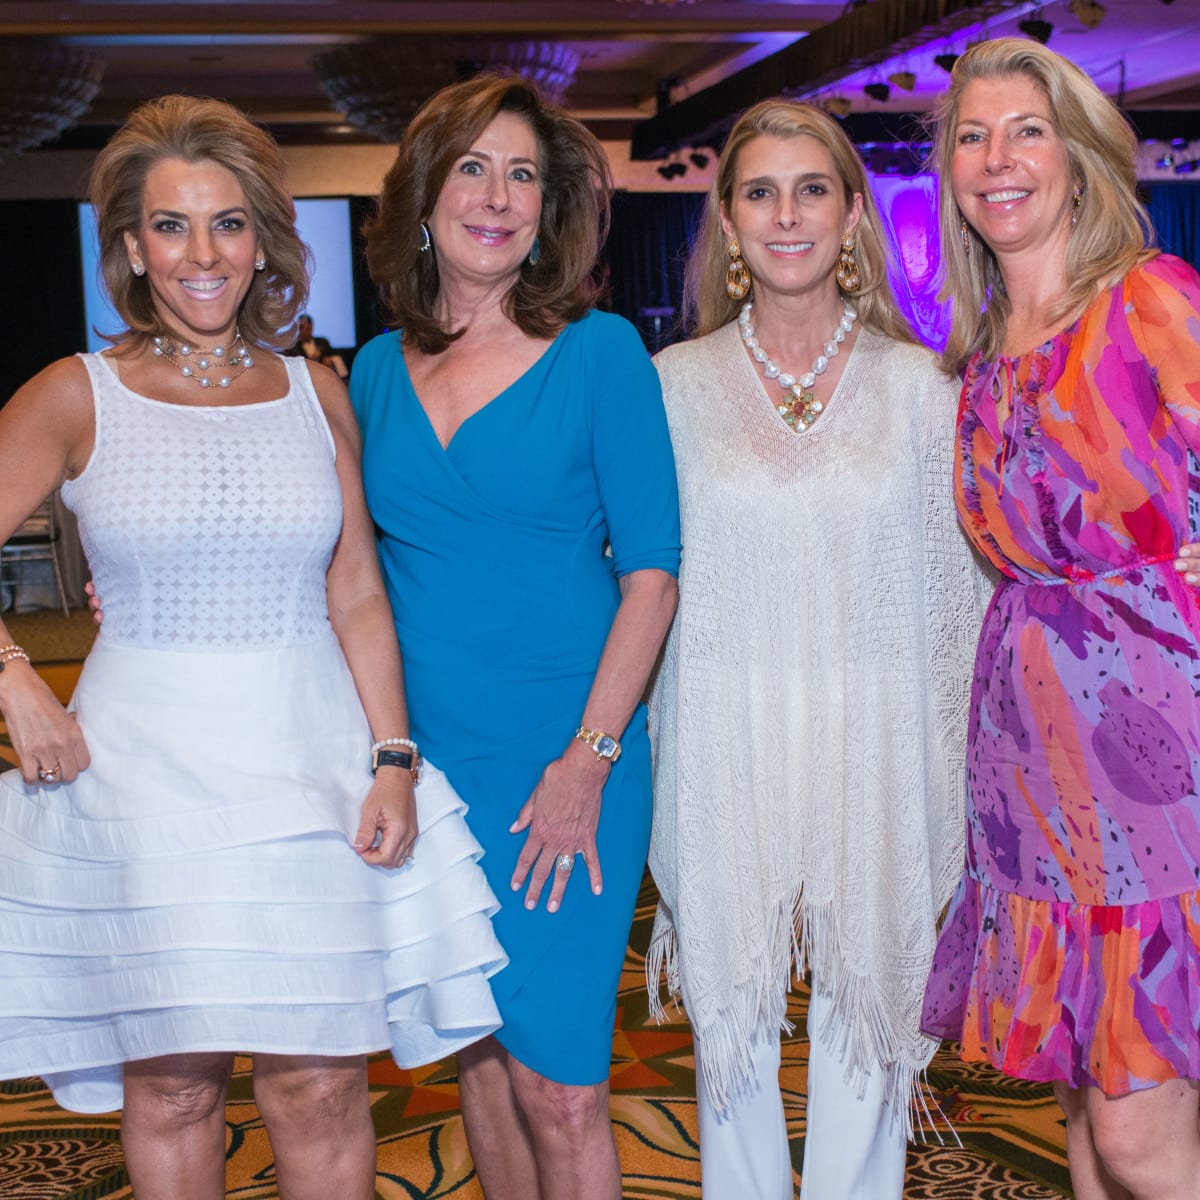 Latin Women's Initiative luncheon 5/16,Mary Tere Peresquia, Vesta Frommer, Patricia Griffith, Christiana Anderson